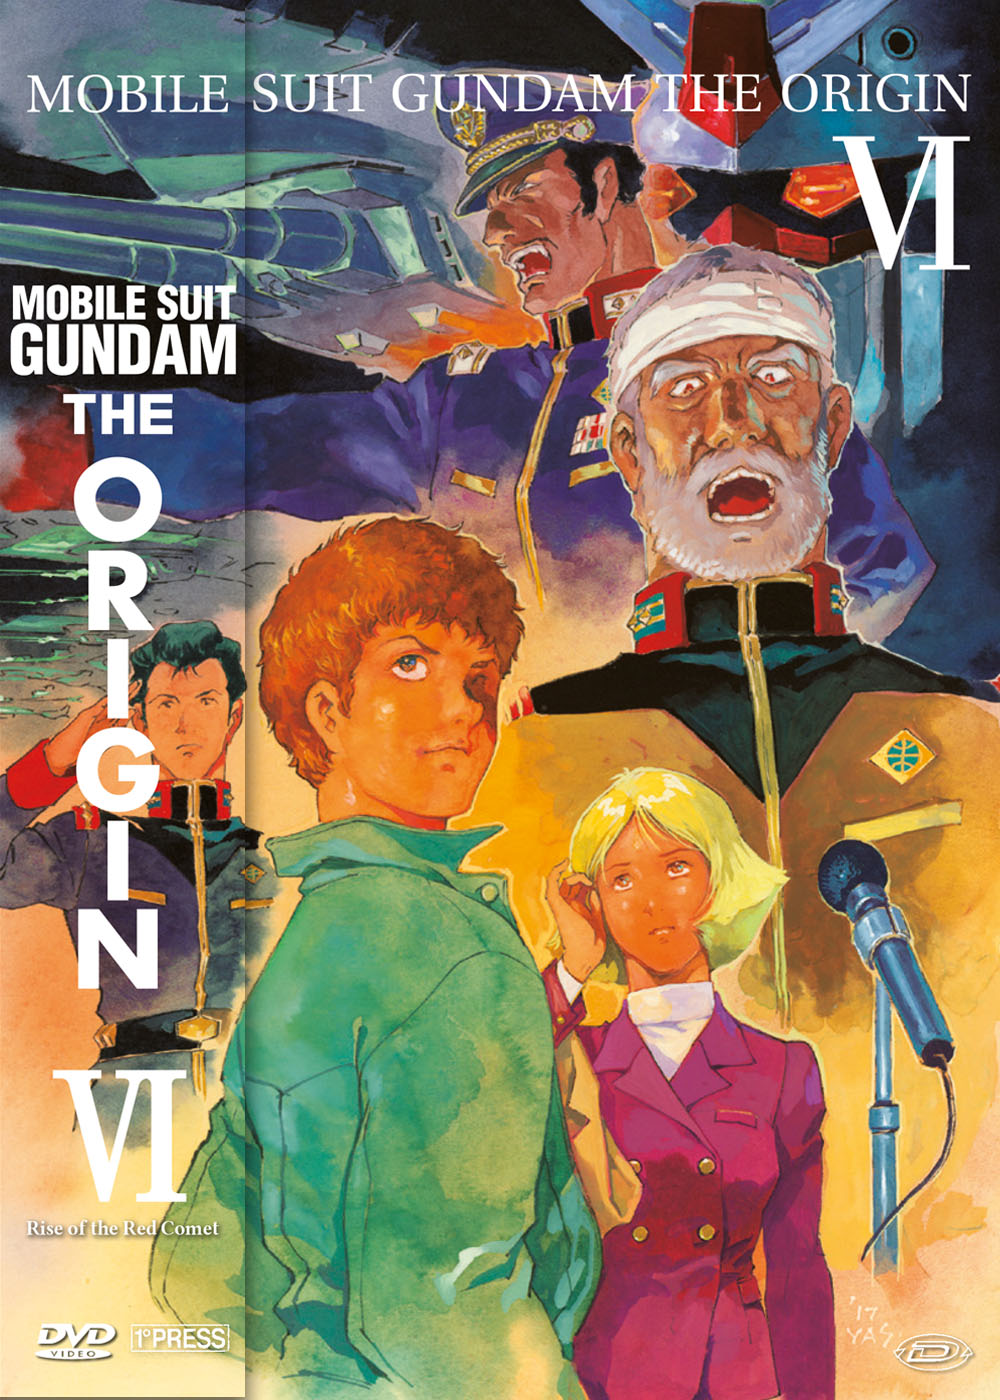 MOBILE SUIT GUNDAM - THE ORIGIN VI - RISE OF THE RED COMET (FIRS